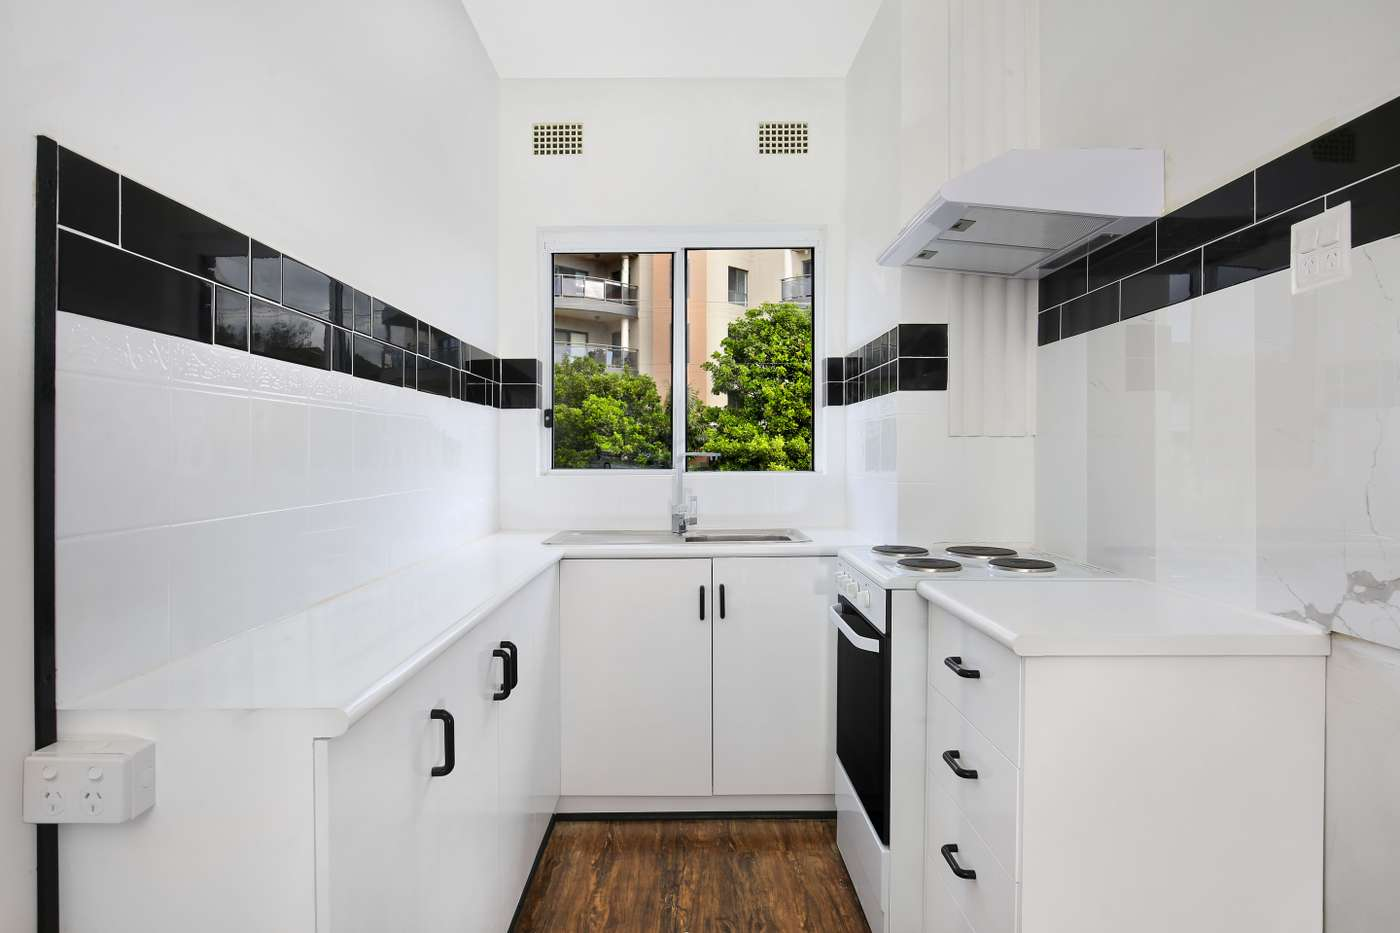 Main view of Homely unit listing, 6/30 Smith Street, Wollongong, NSW 2500